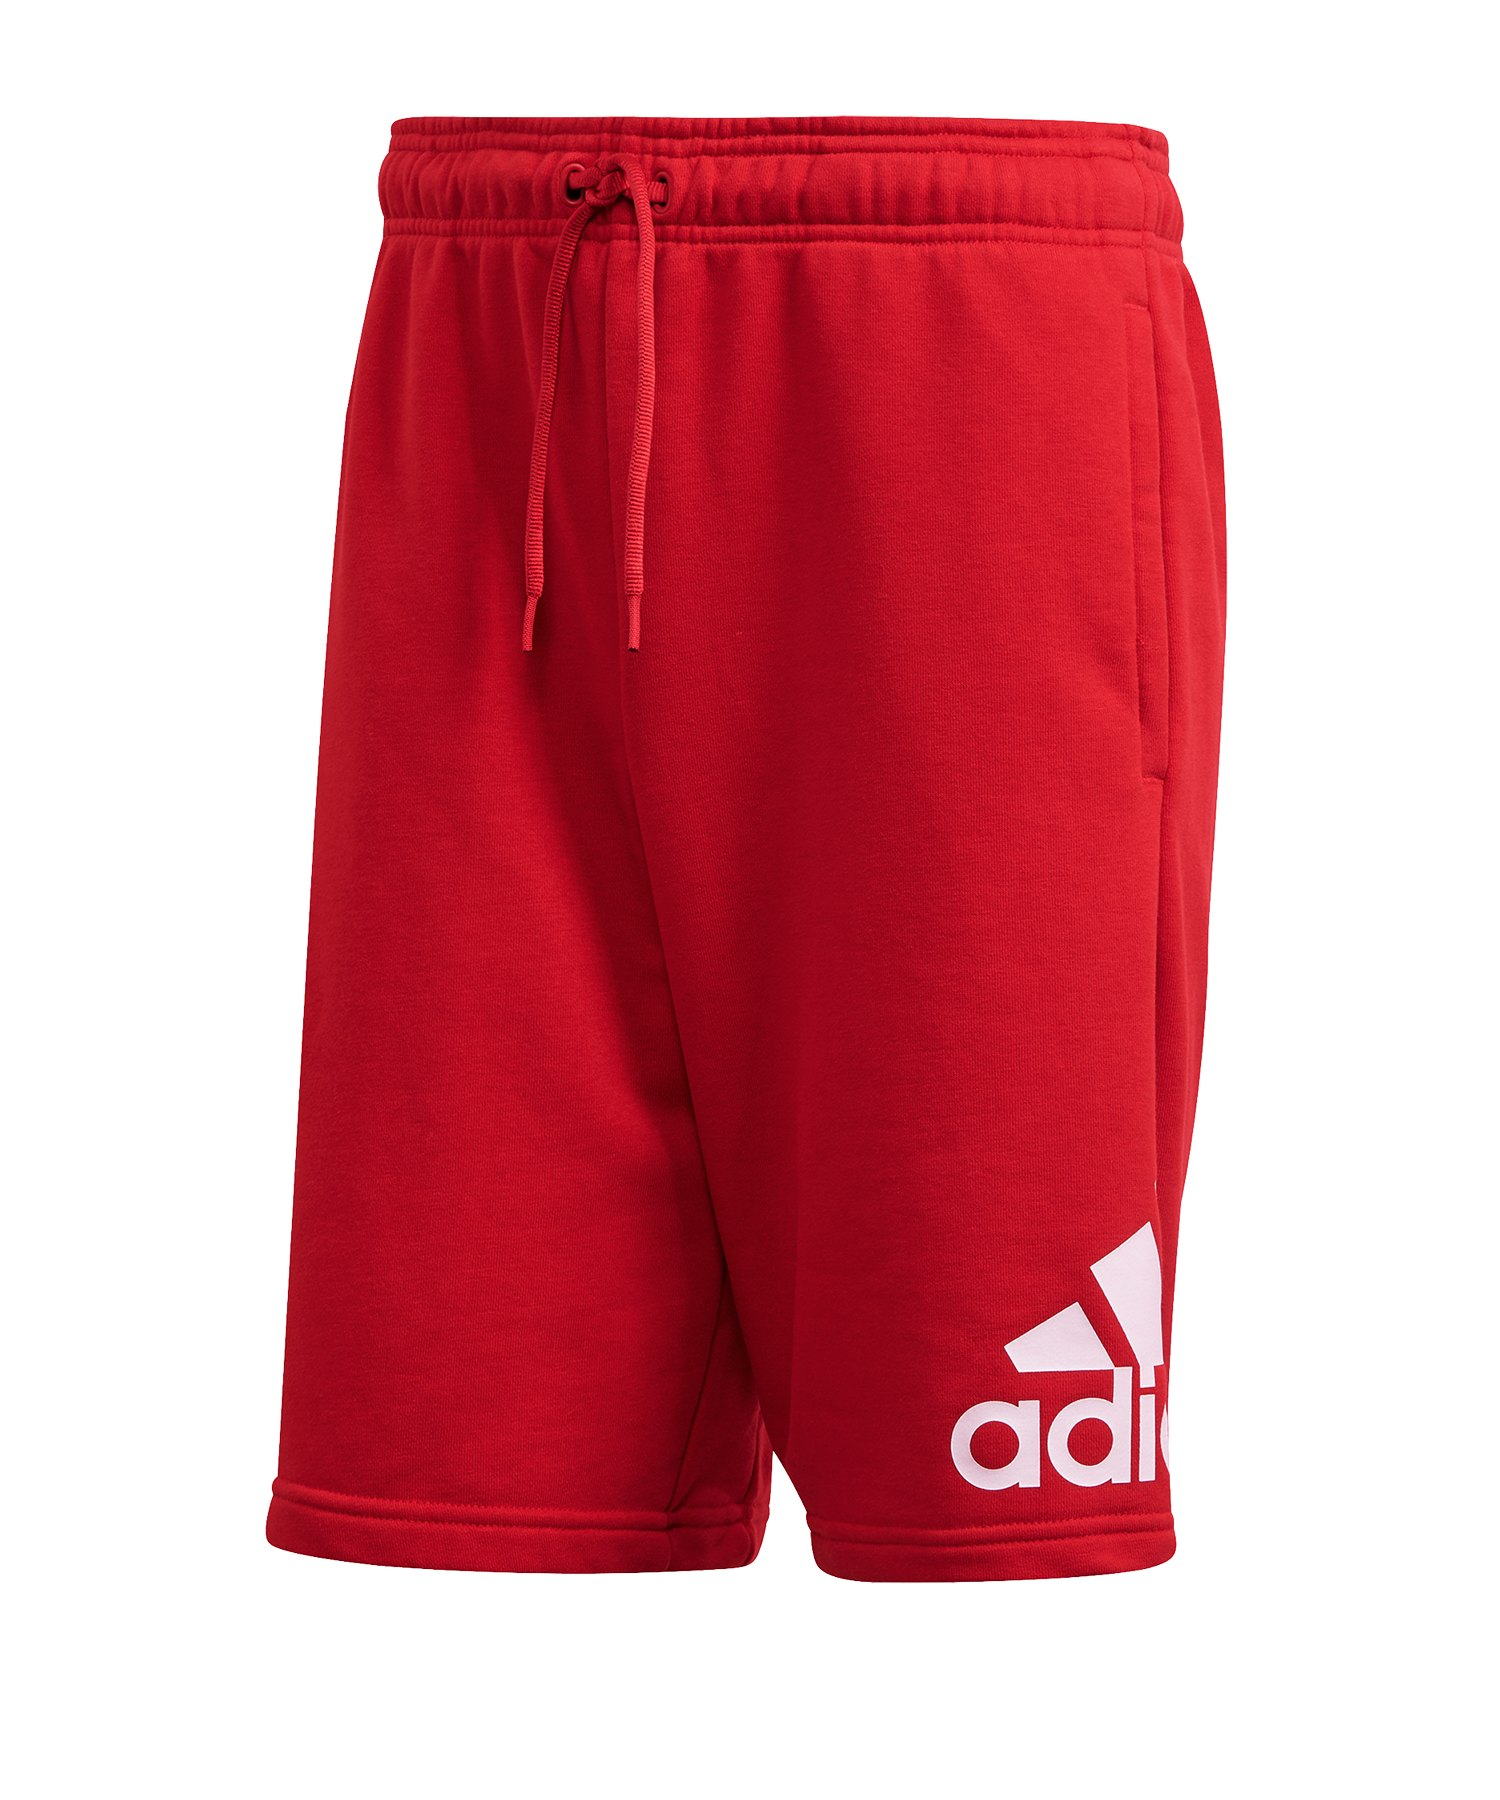 adidas MH BOS Short Rot Weiss - rot